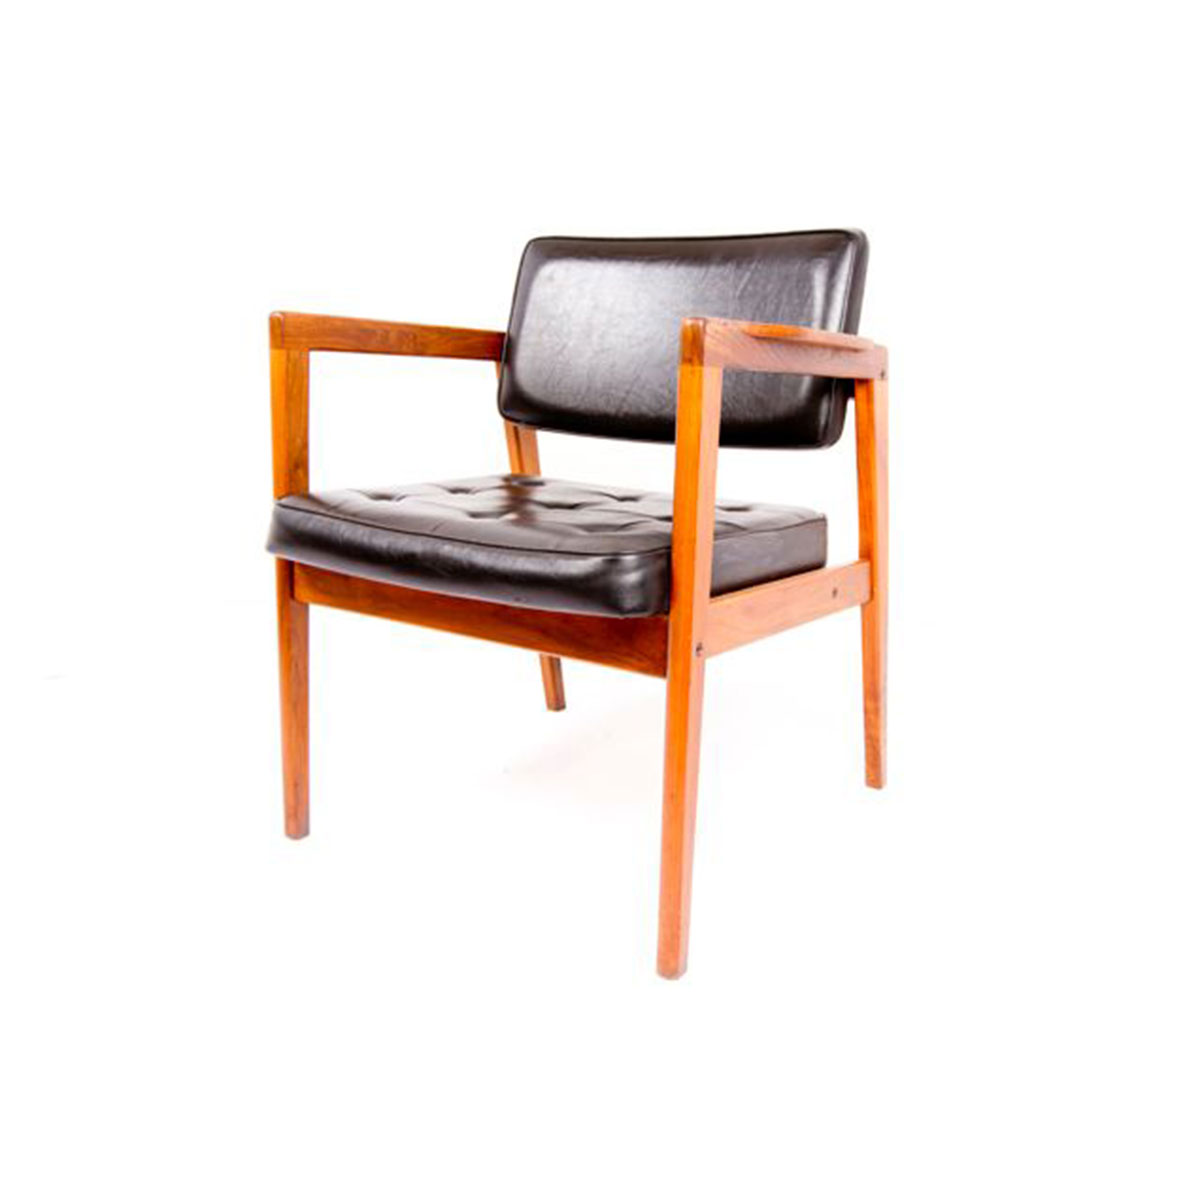 Swedish Mid Century Modern Accent / Desk Chair